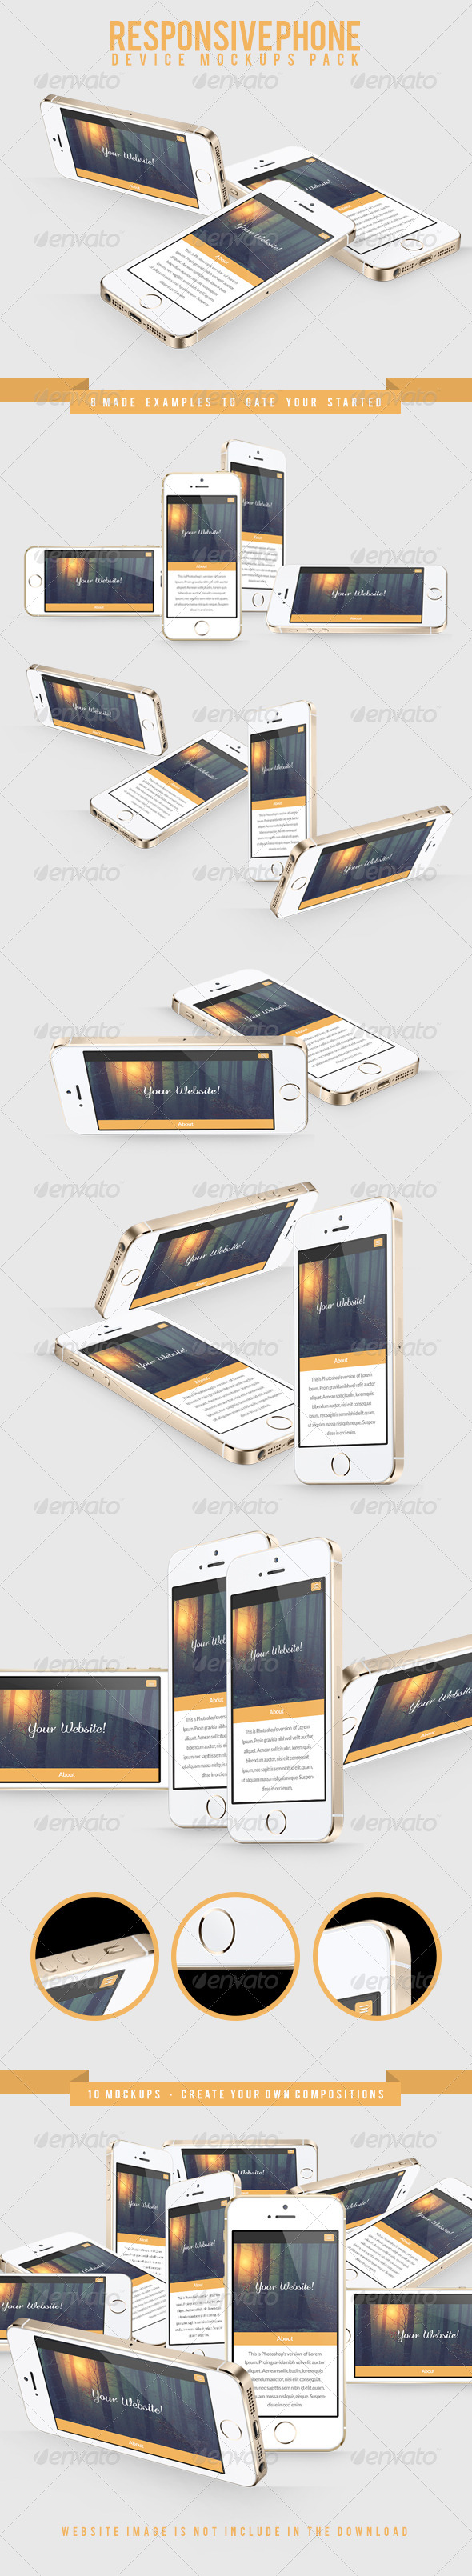 GraphicRiver Responsive Phone Device Mockups Pack 7768623